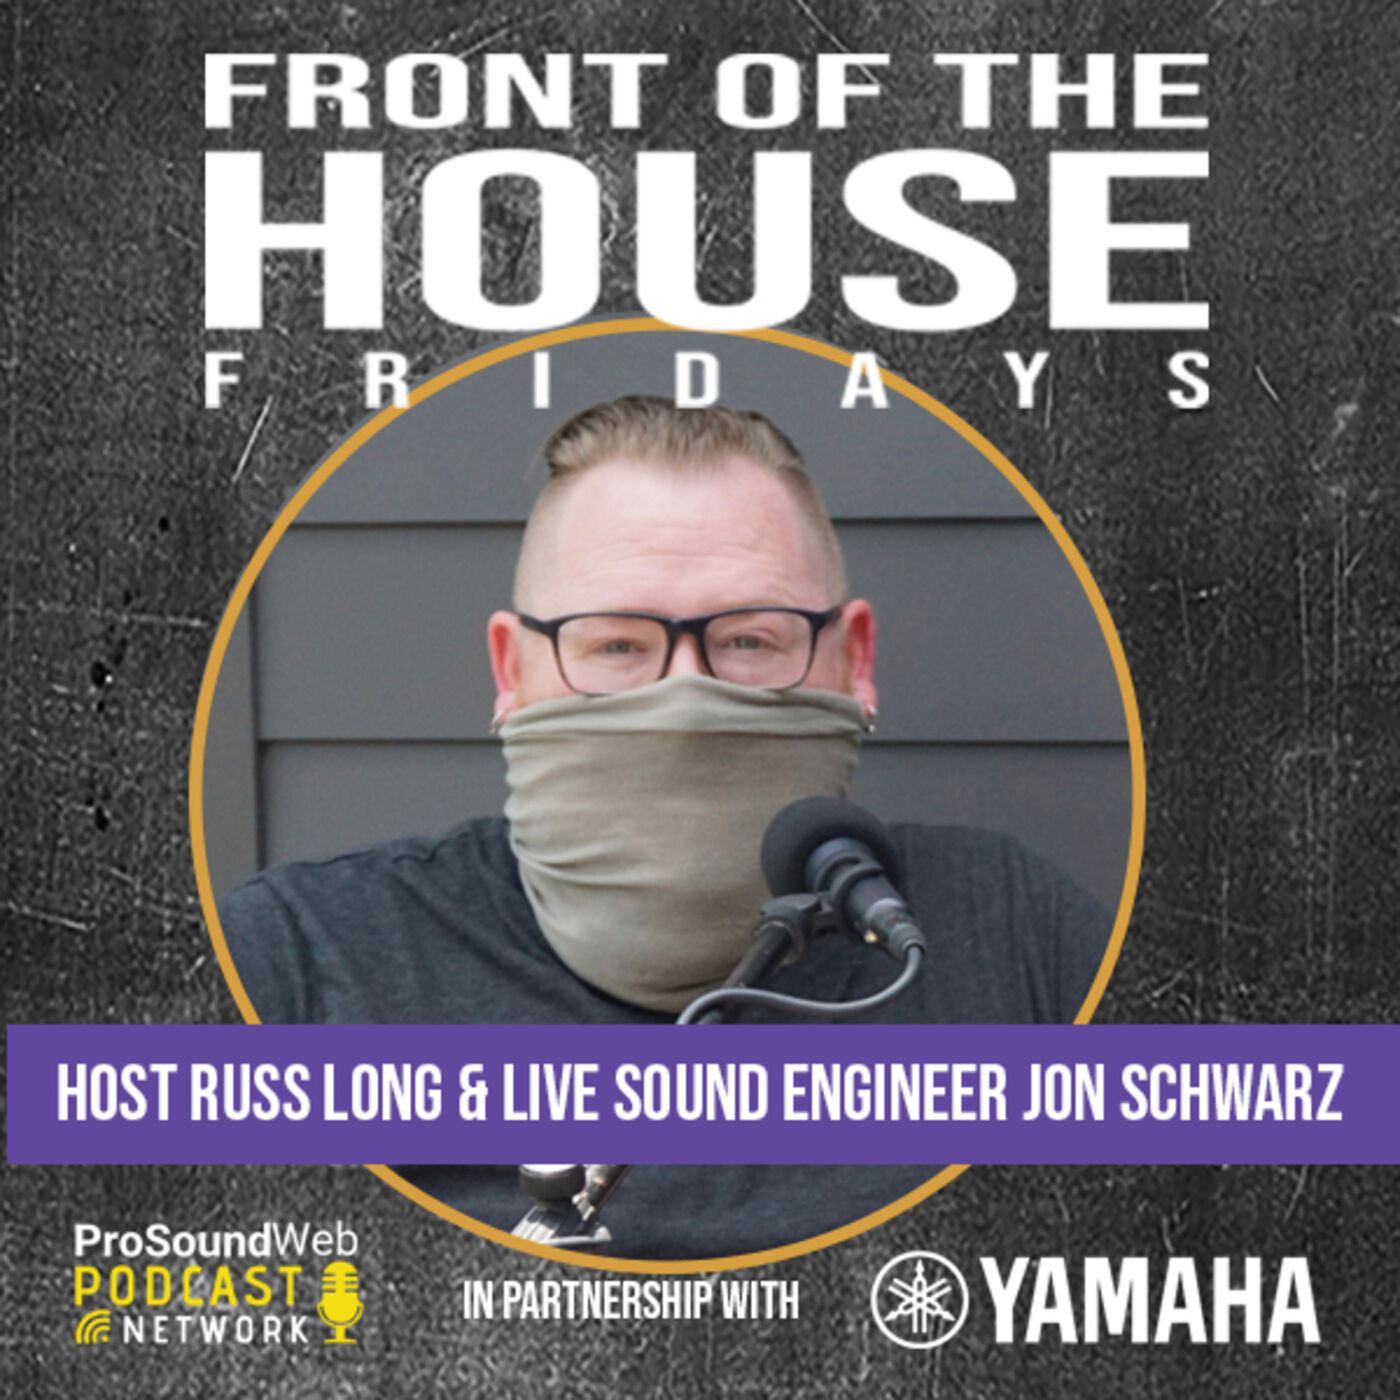 Episode 9: Live Sound Engineer Jon Schwarz